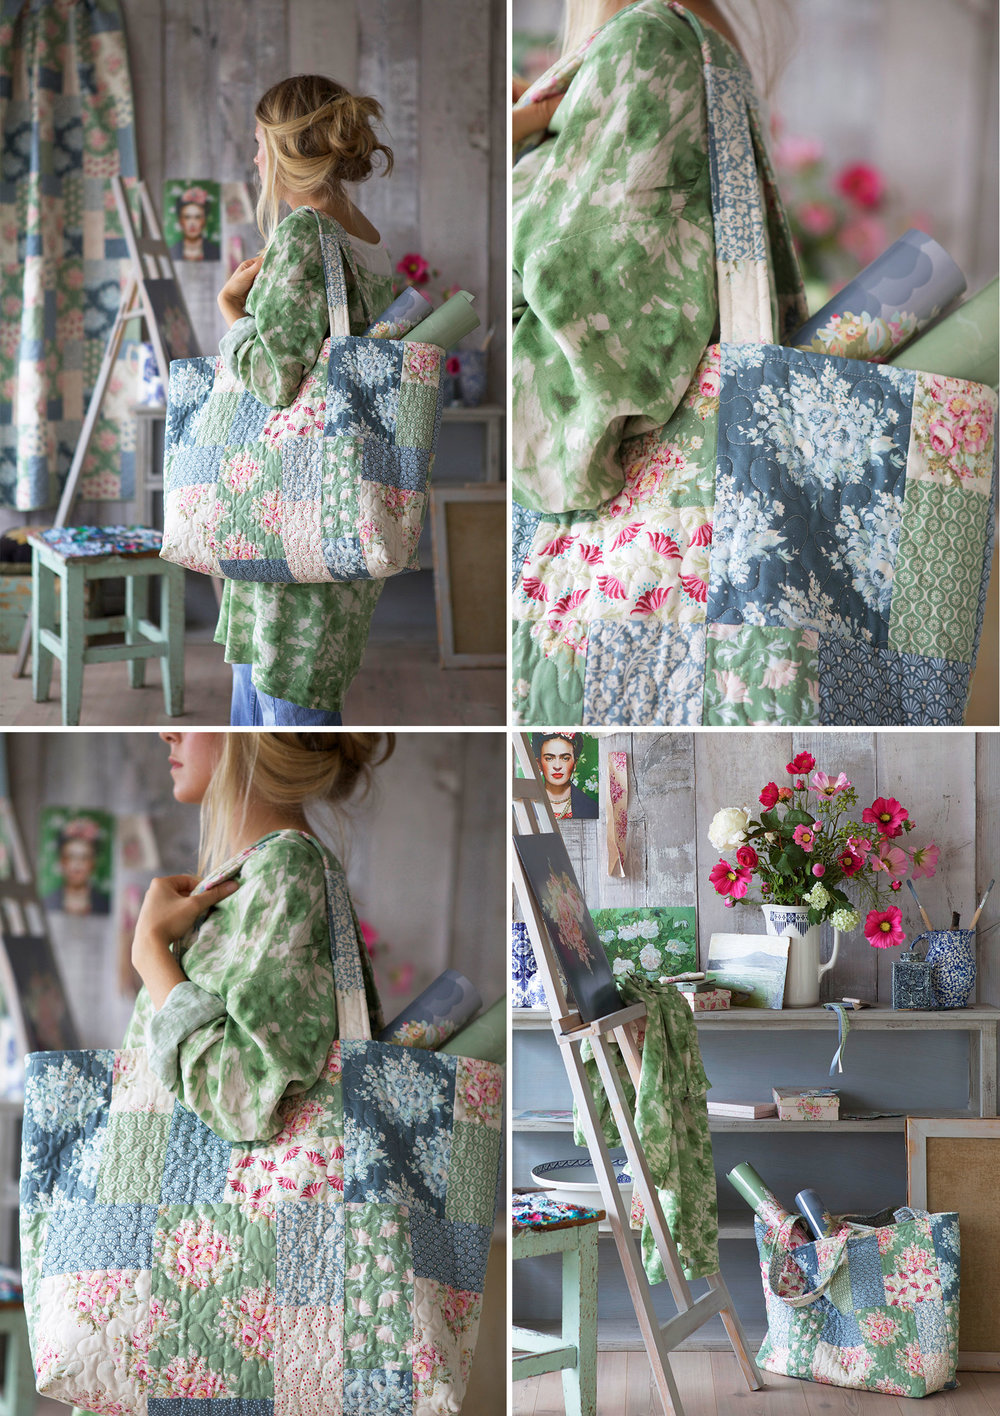 Painting-Flowers-Bag.jpg